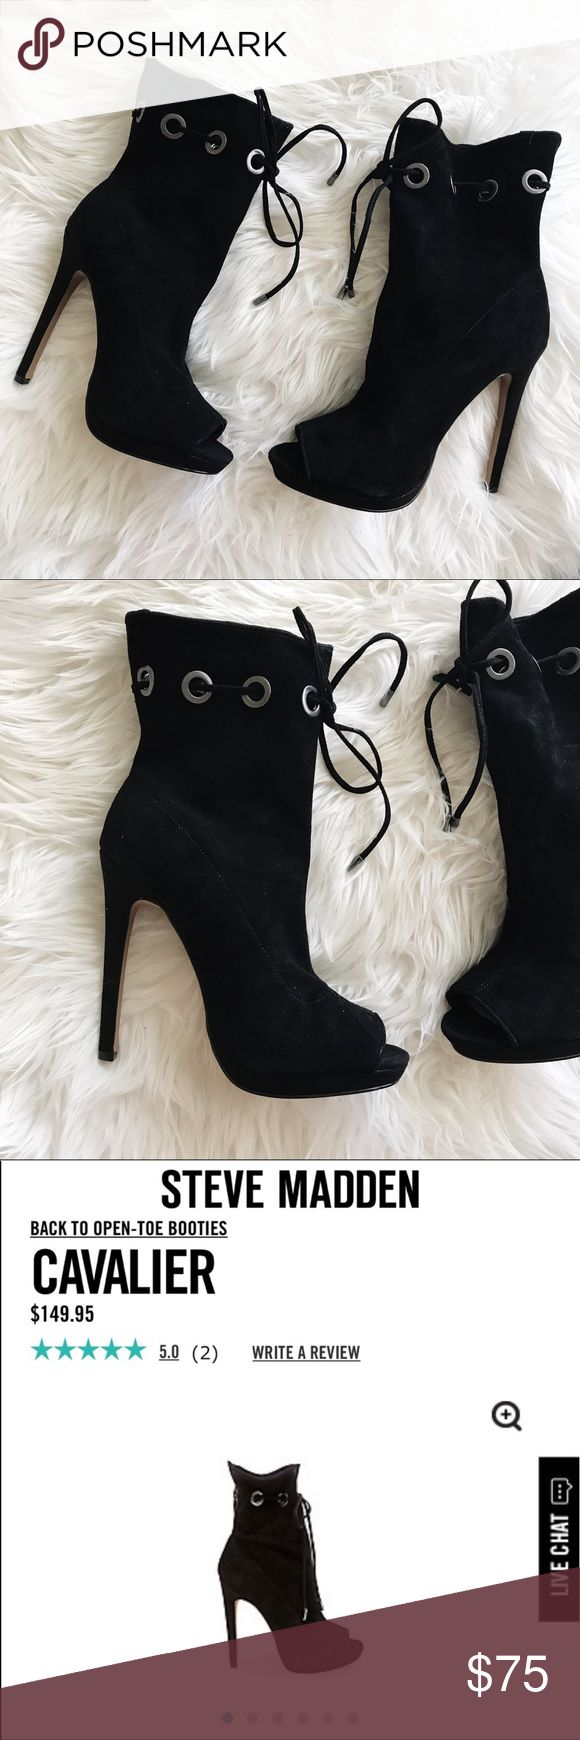 """Steve Madden Cavalier Black Suede Booties Steve Madden """"Cavalier"""" Black Booties • brand new • still FULL PRICE in stores • size 6 • bought to give as a gift and didnt work out • accepting reasonable offers + bundle to save • Despite having a sky-high heel, CAVALIER's sex appeal appears effortless, thanks to the bootie's slouchy-chic shaft that cinches with a playful drawstring.  Suede upper material Fabric lining Man-made sole 4.75 inch heel height 11.75 inch shaft circumference 6 inch shaft…"""